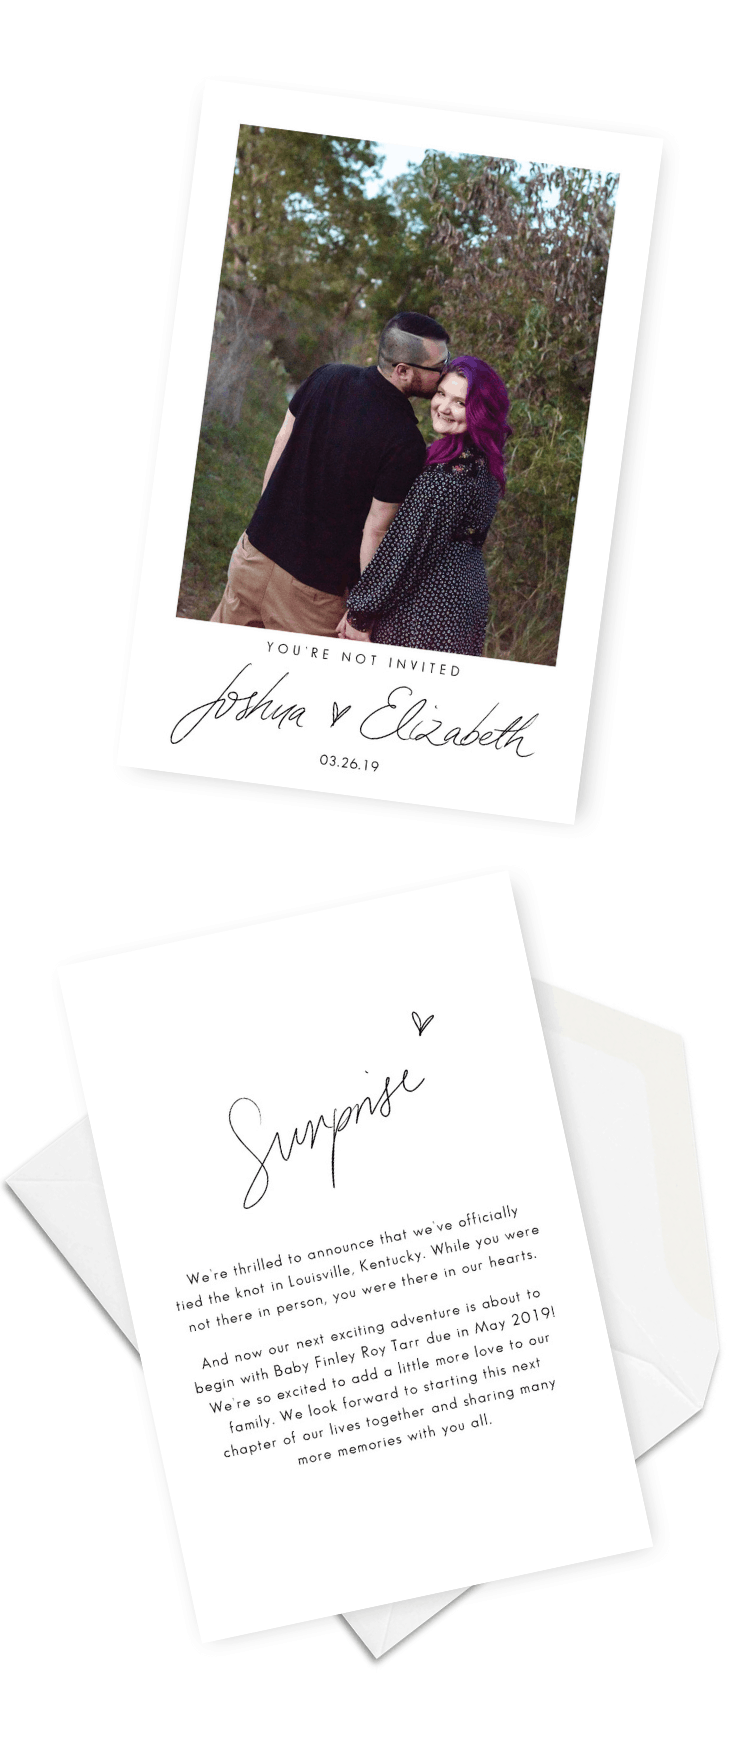 Elopement Announcement Funny Cute Ideas You Are Not Invited For the Love of Stationery Ethereal Imagery